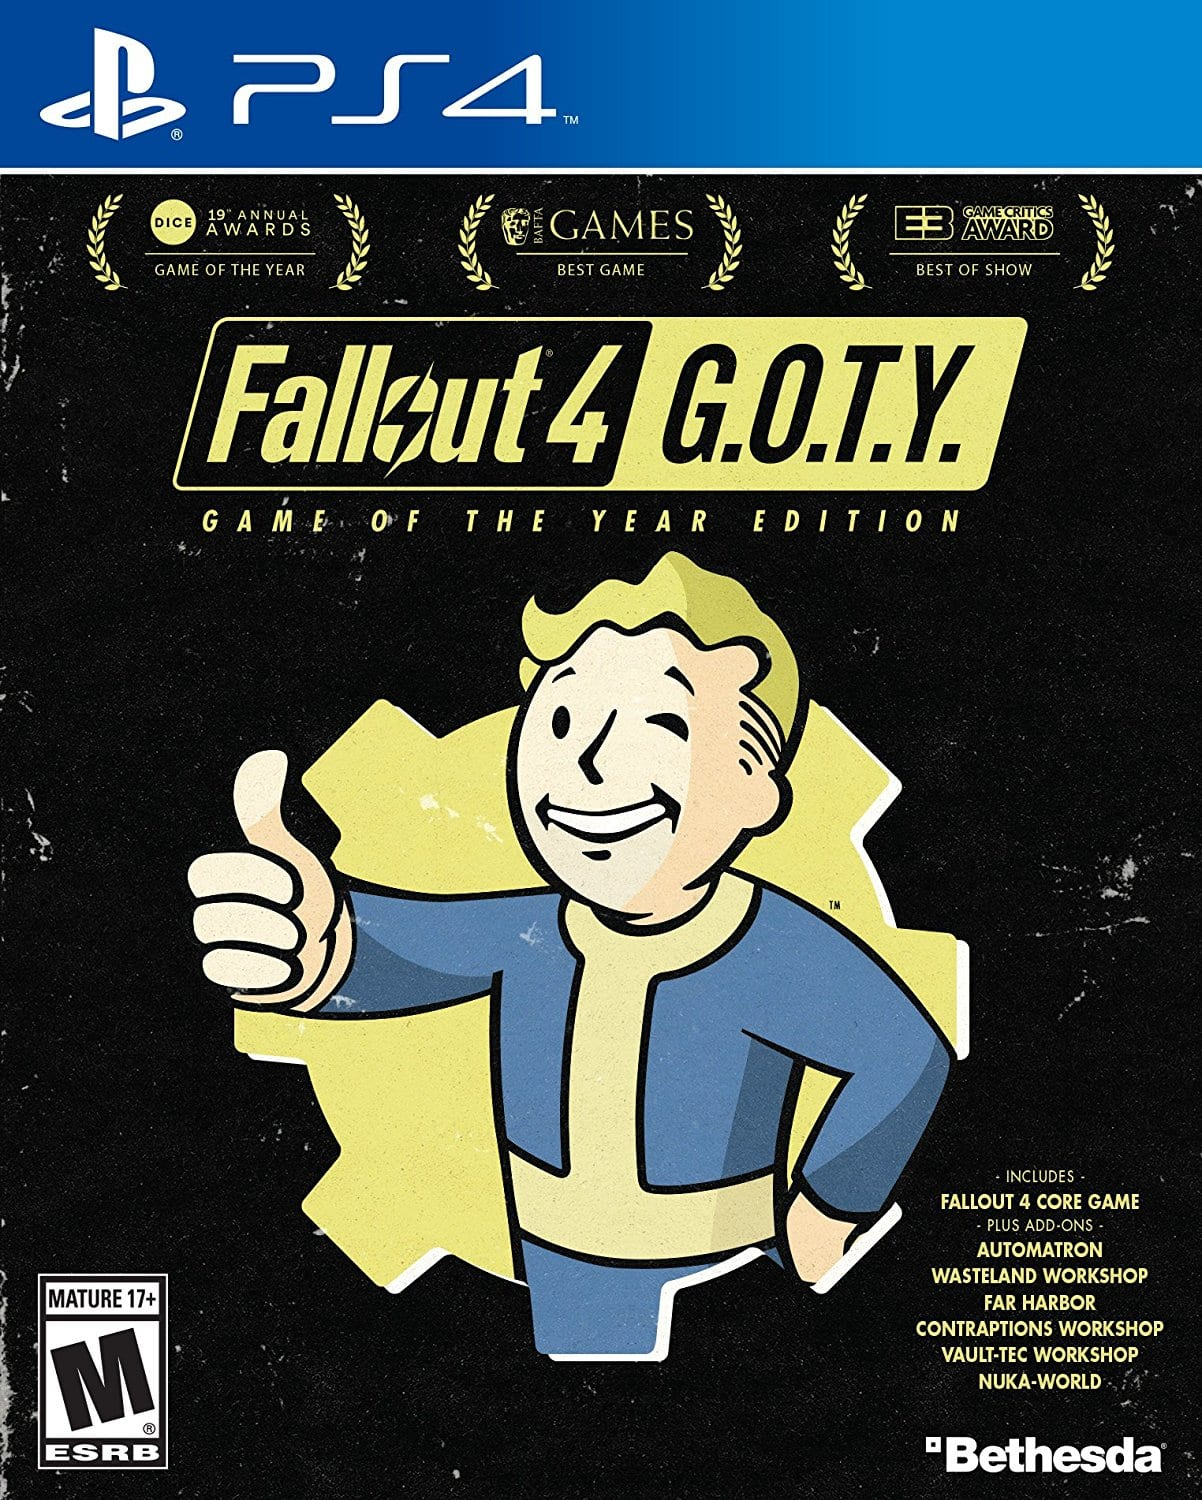 Fallout 4: Game of the Year Edition Untill 12/11 $29.99